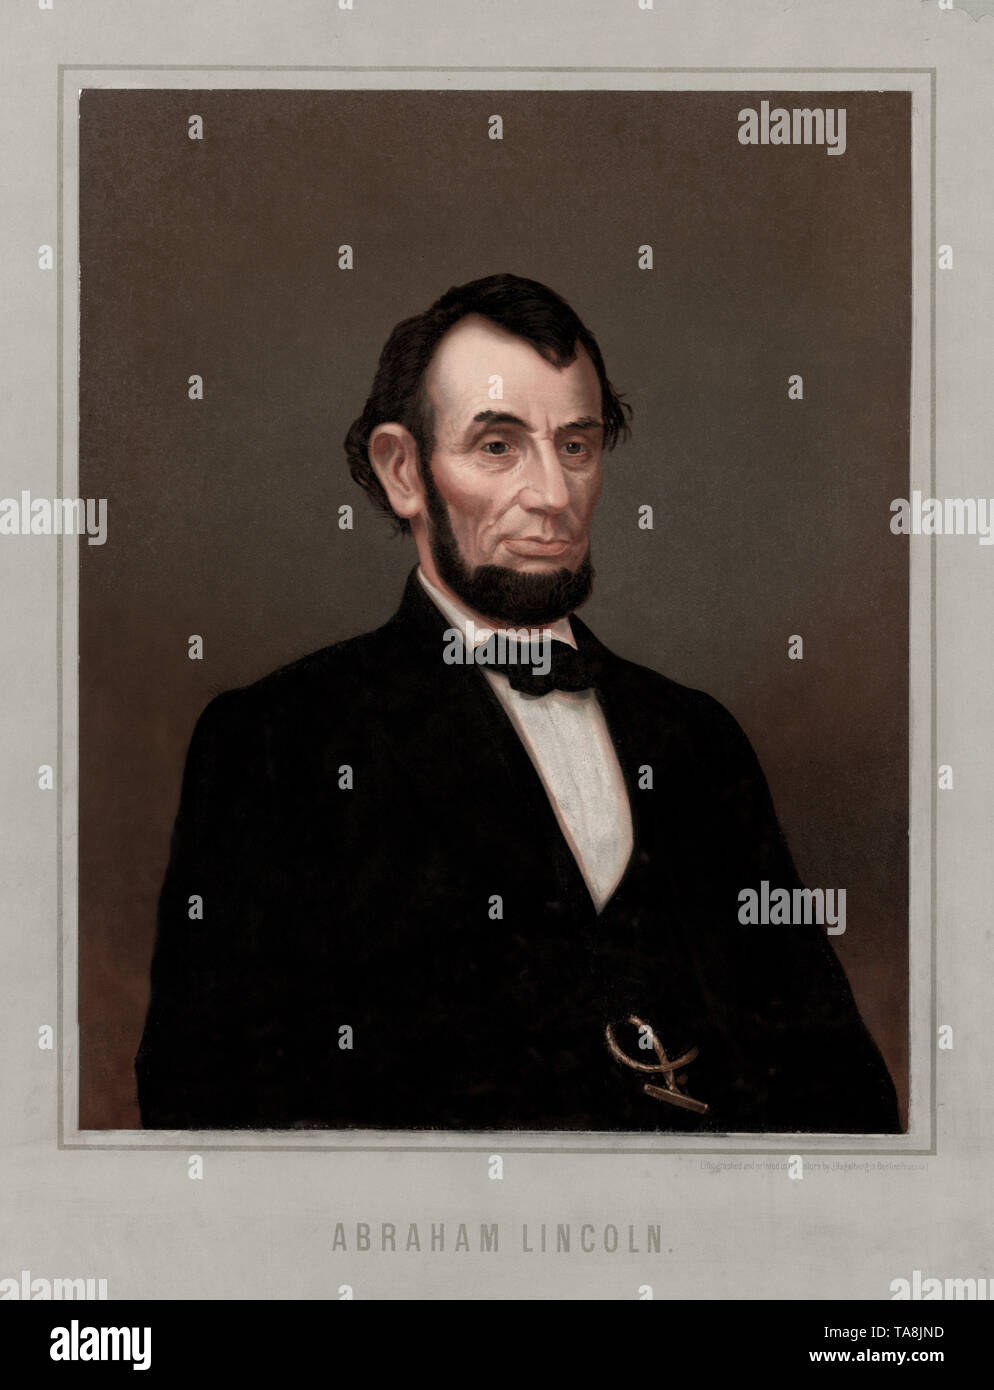 Half Length Portrait of U.S. President Abraham Lincoln, Lithograph and Printed in Oil Colors by J. Hagelberg, Berlin, 1860's - Stock Image